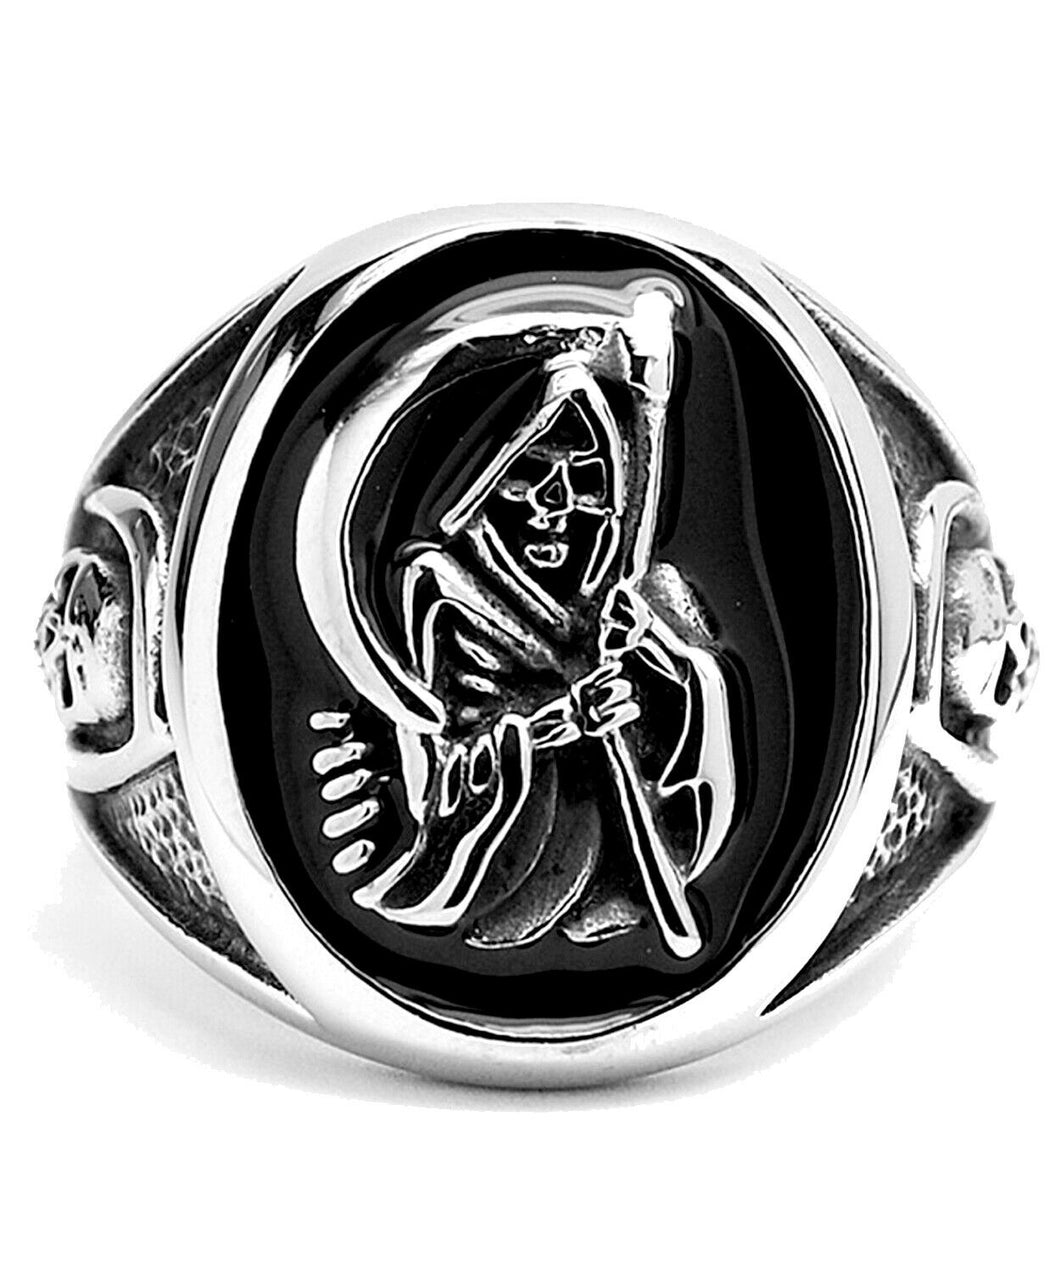 Stainless Steel Casted Grim Reaper Ring with Enamel